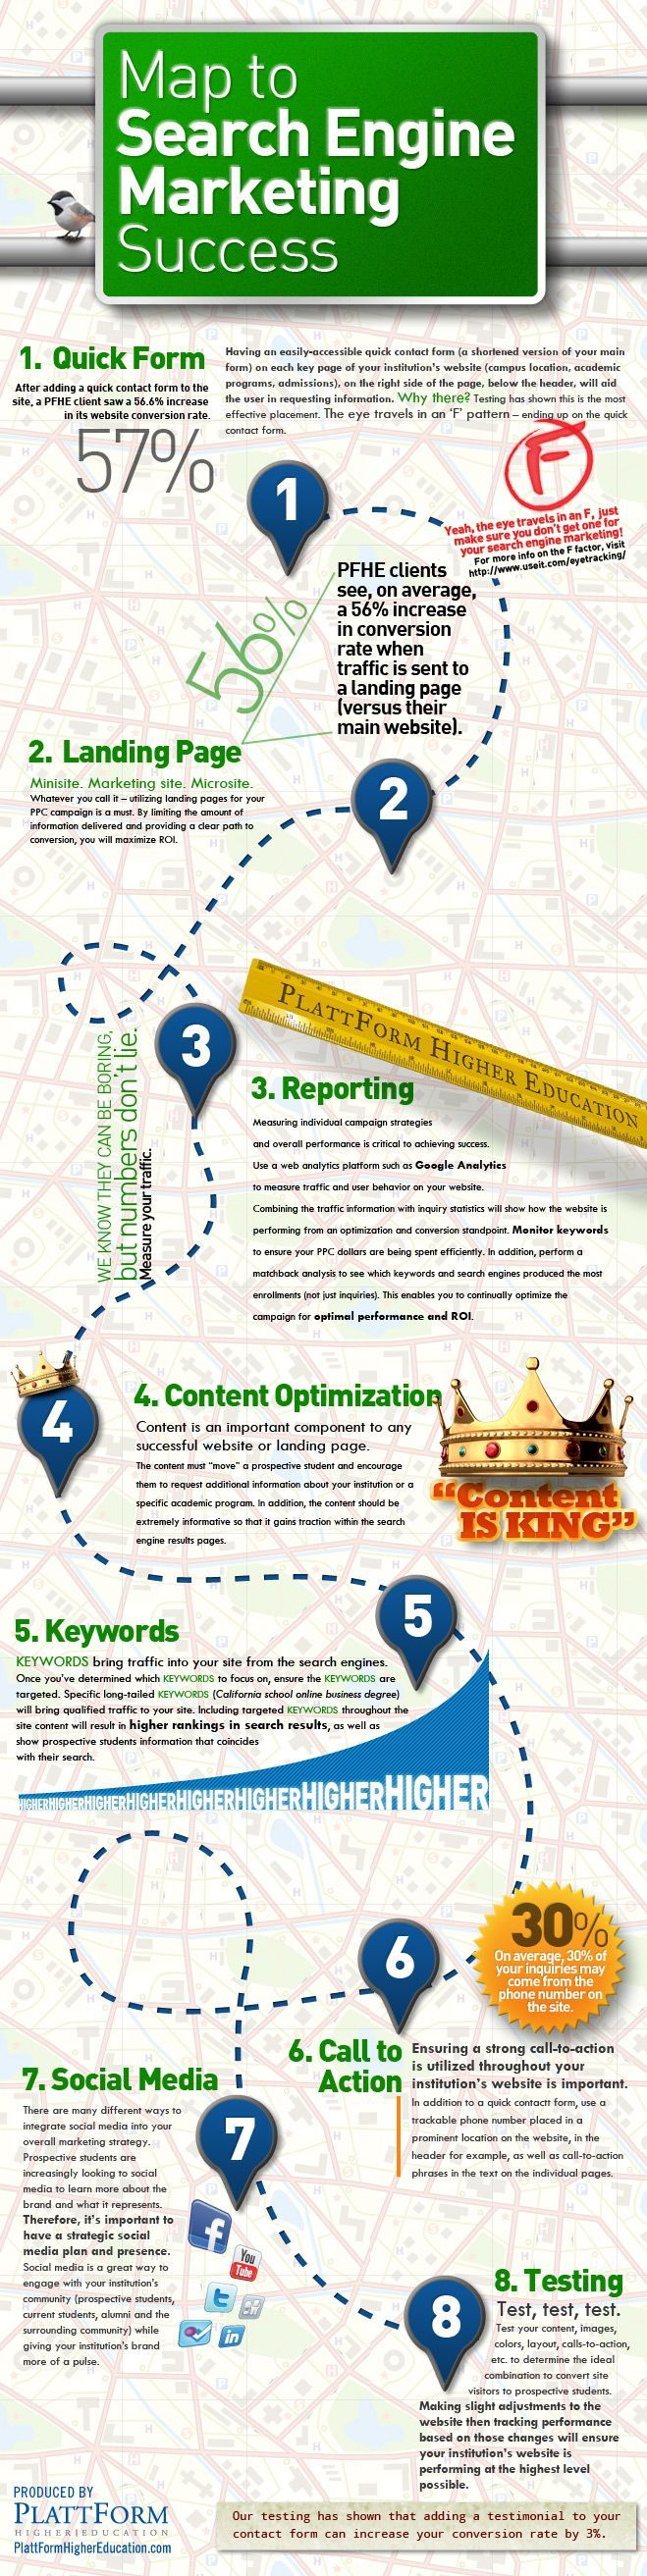 Map To Search Engine Marketing Success [#INFOGRAPHIC].   Landing Page, Reporting, Content Optimization, Keywords, Call to Action, Social Media, Testing